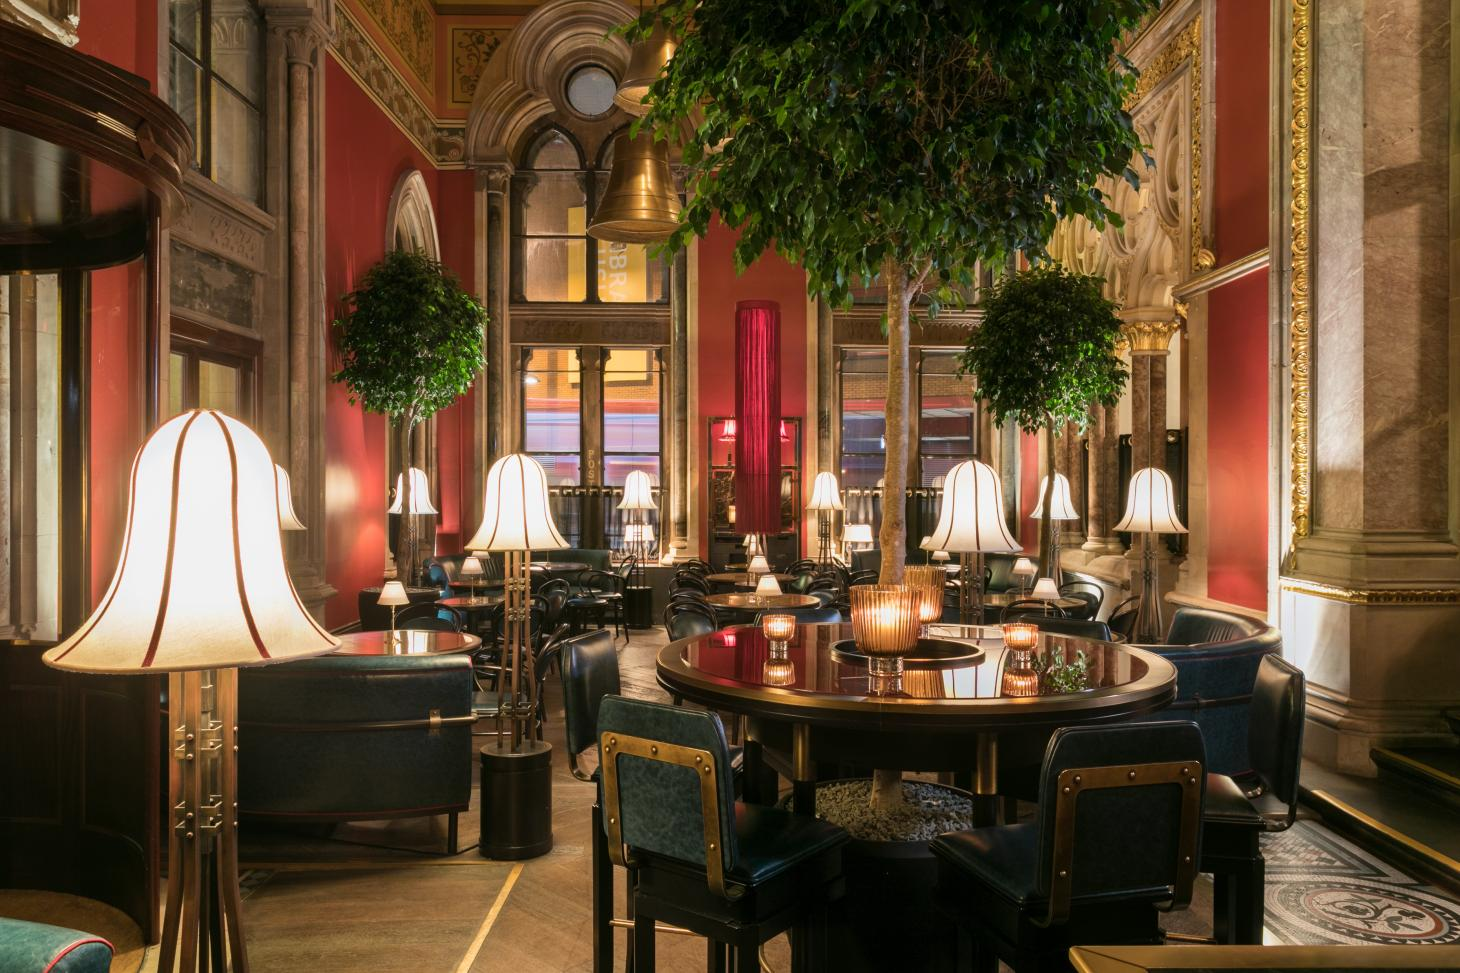 George's bar at the St Pancras Renaissance Hotel